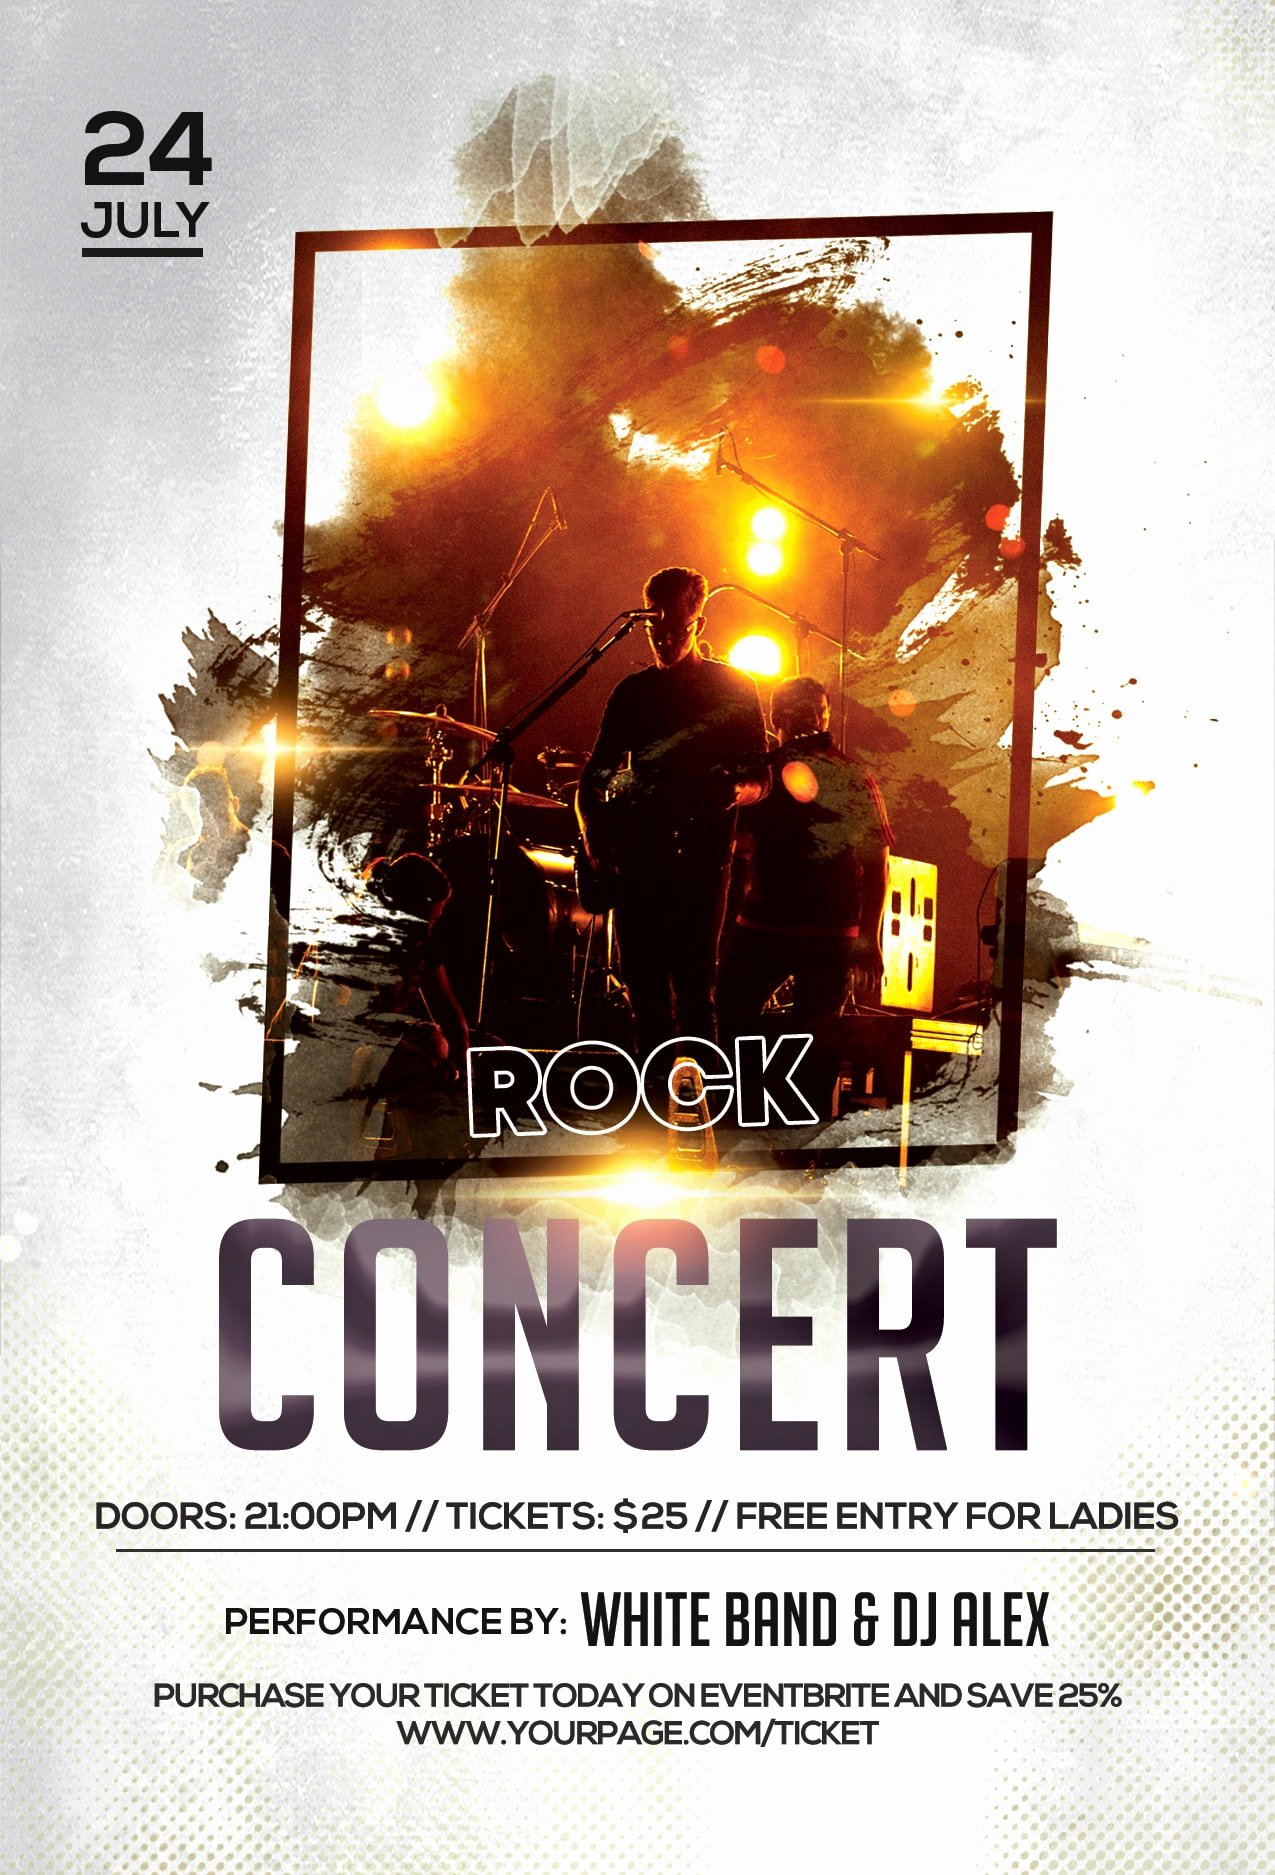 Free Concert Flyer Template Lovely Rock Concert Free Psd Flyer Template Free Psd Flyer Templates Brochures Mockup & More